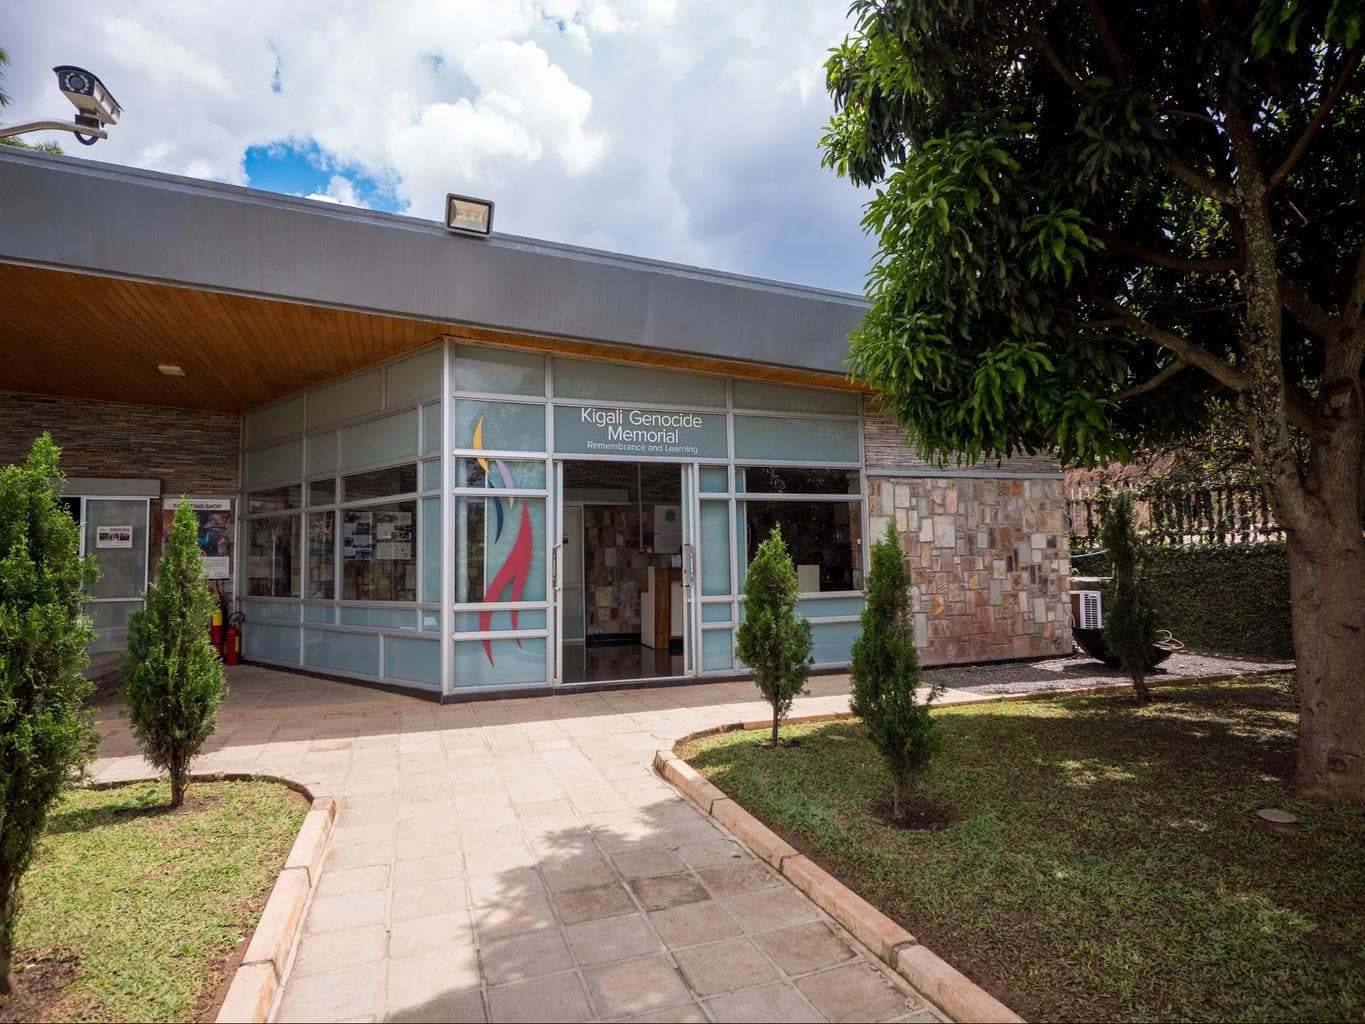 The Kigali Genocide Memorial